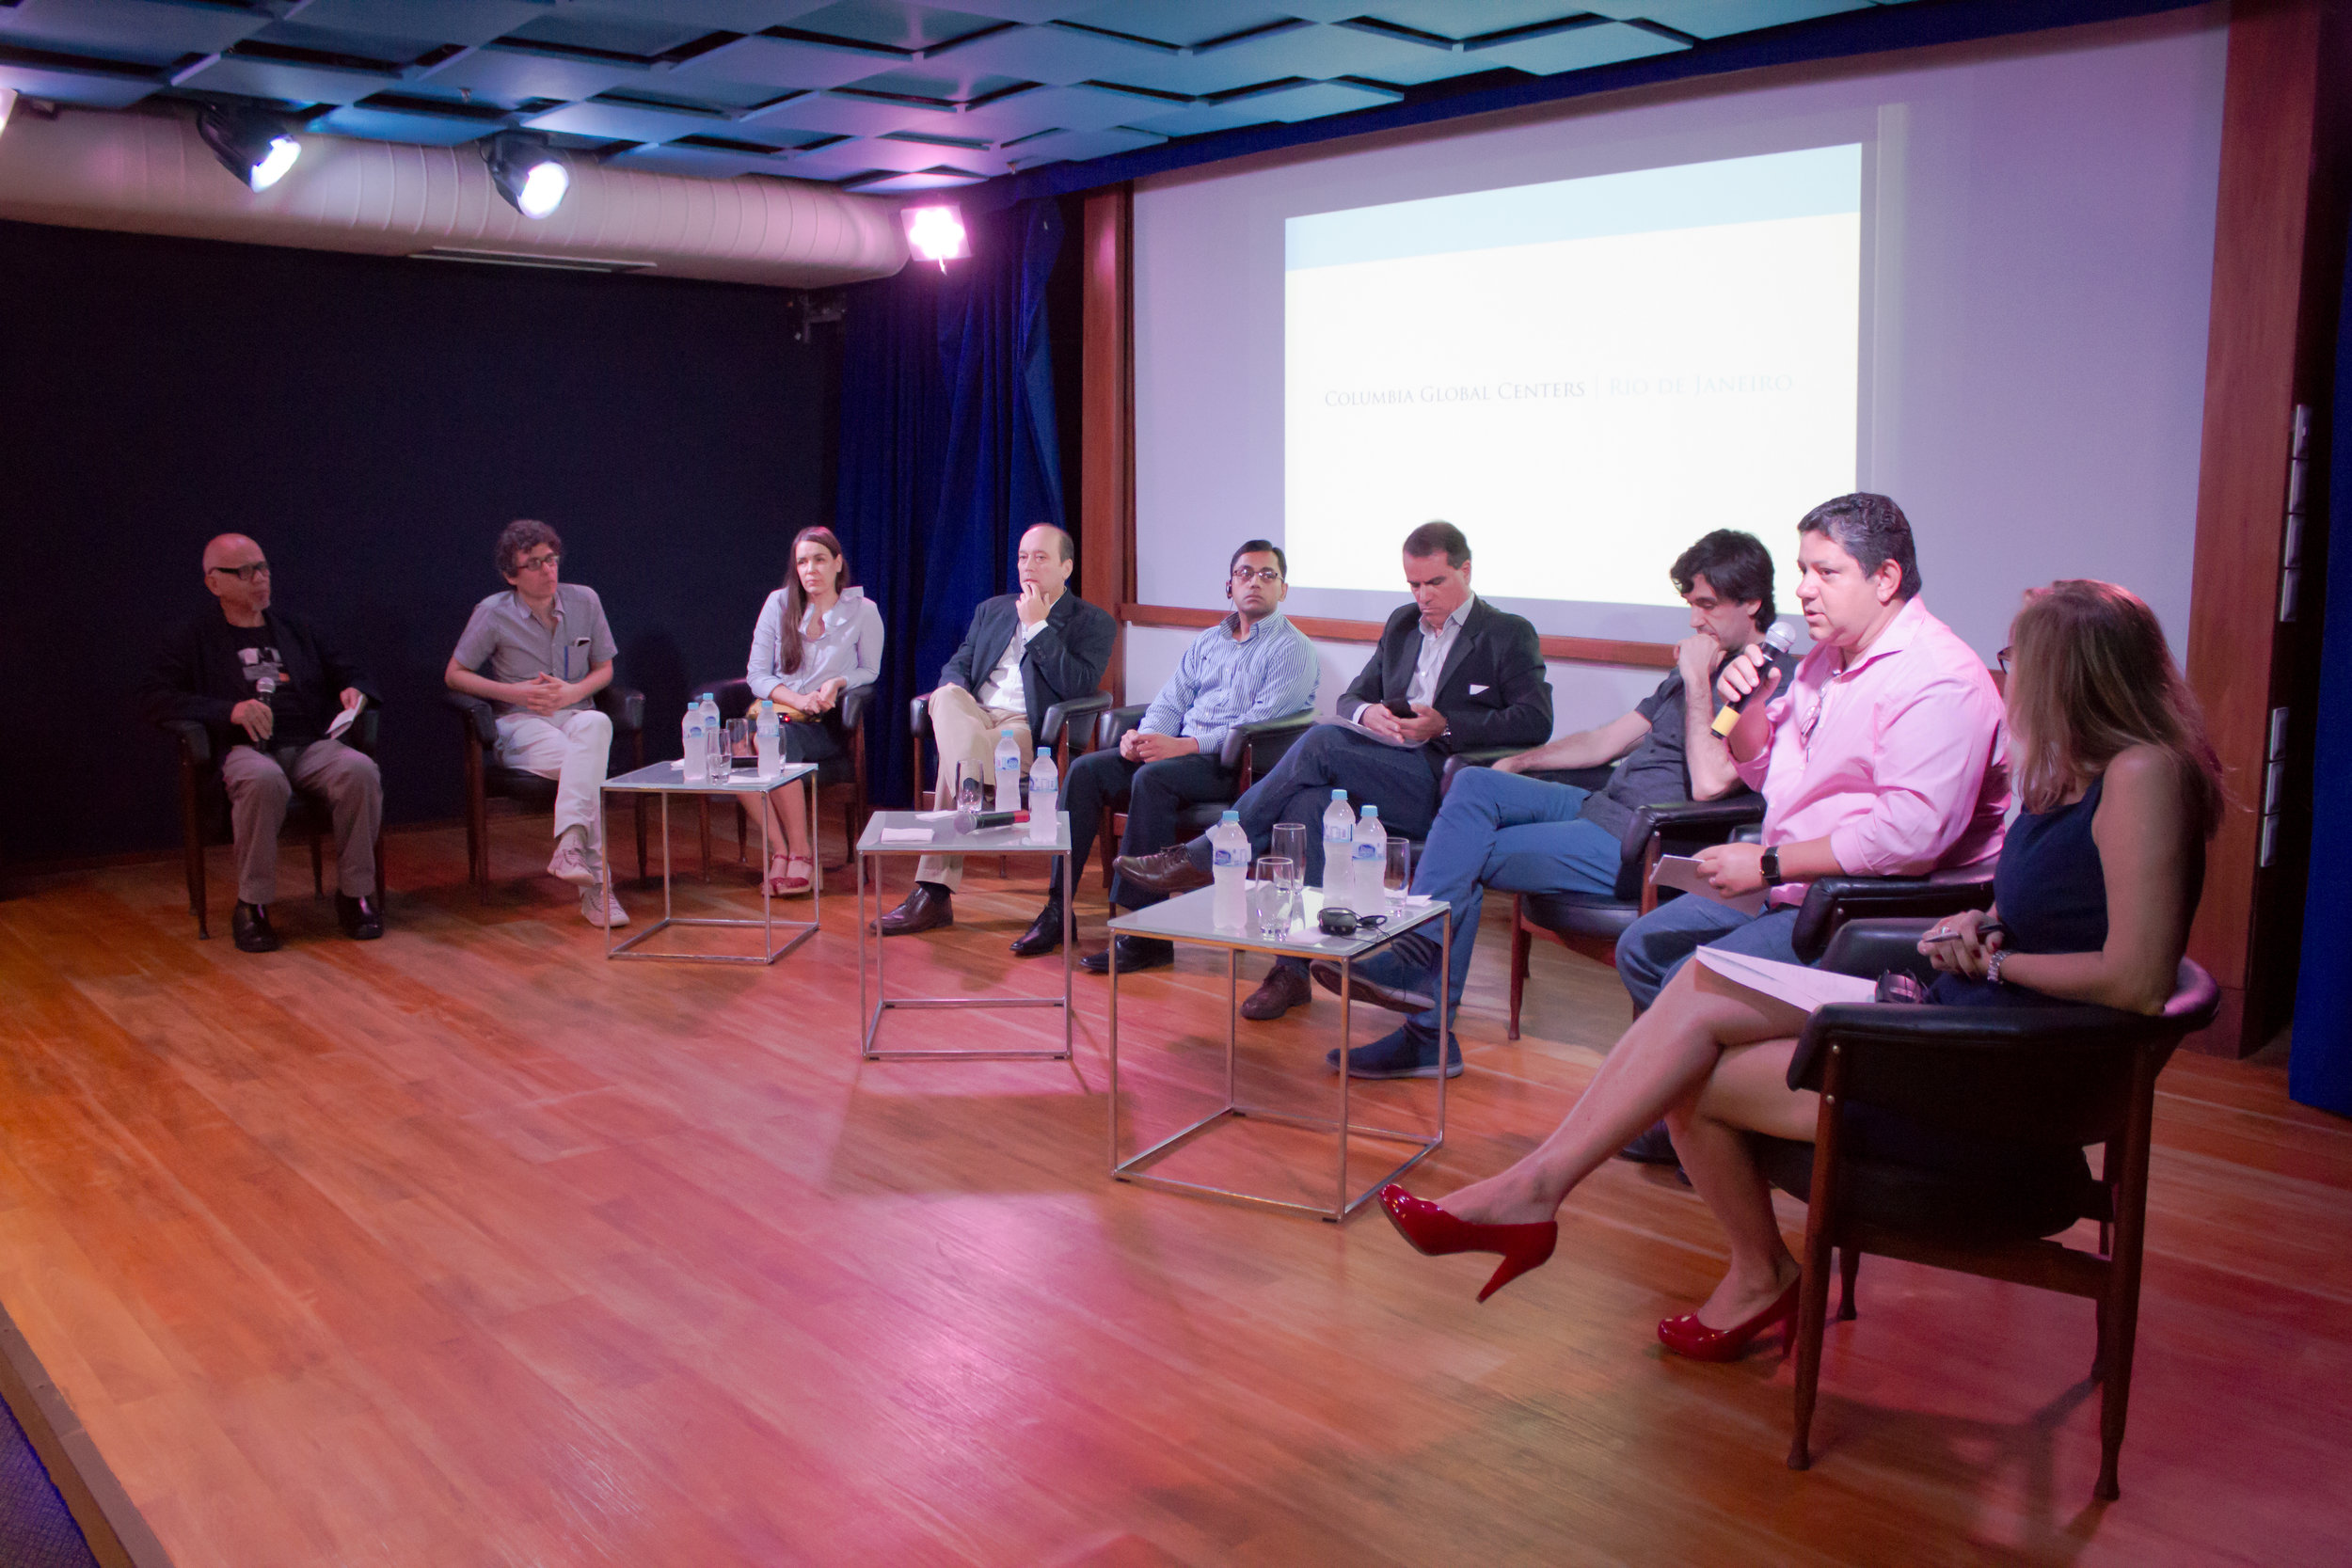 Participating in the debate following the lecture (image: Studio-X)